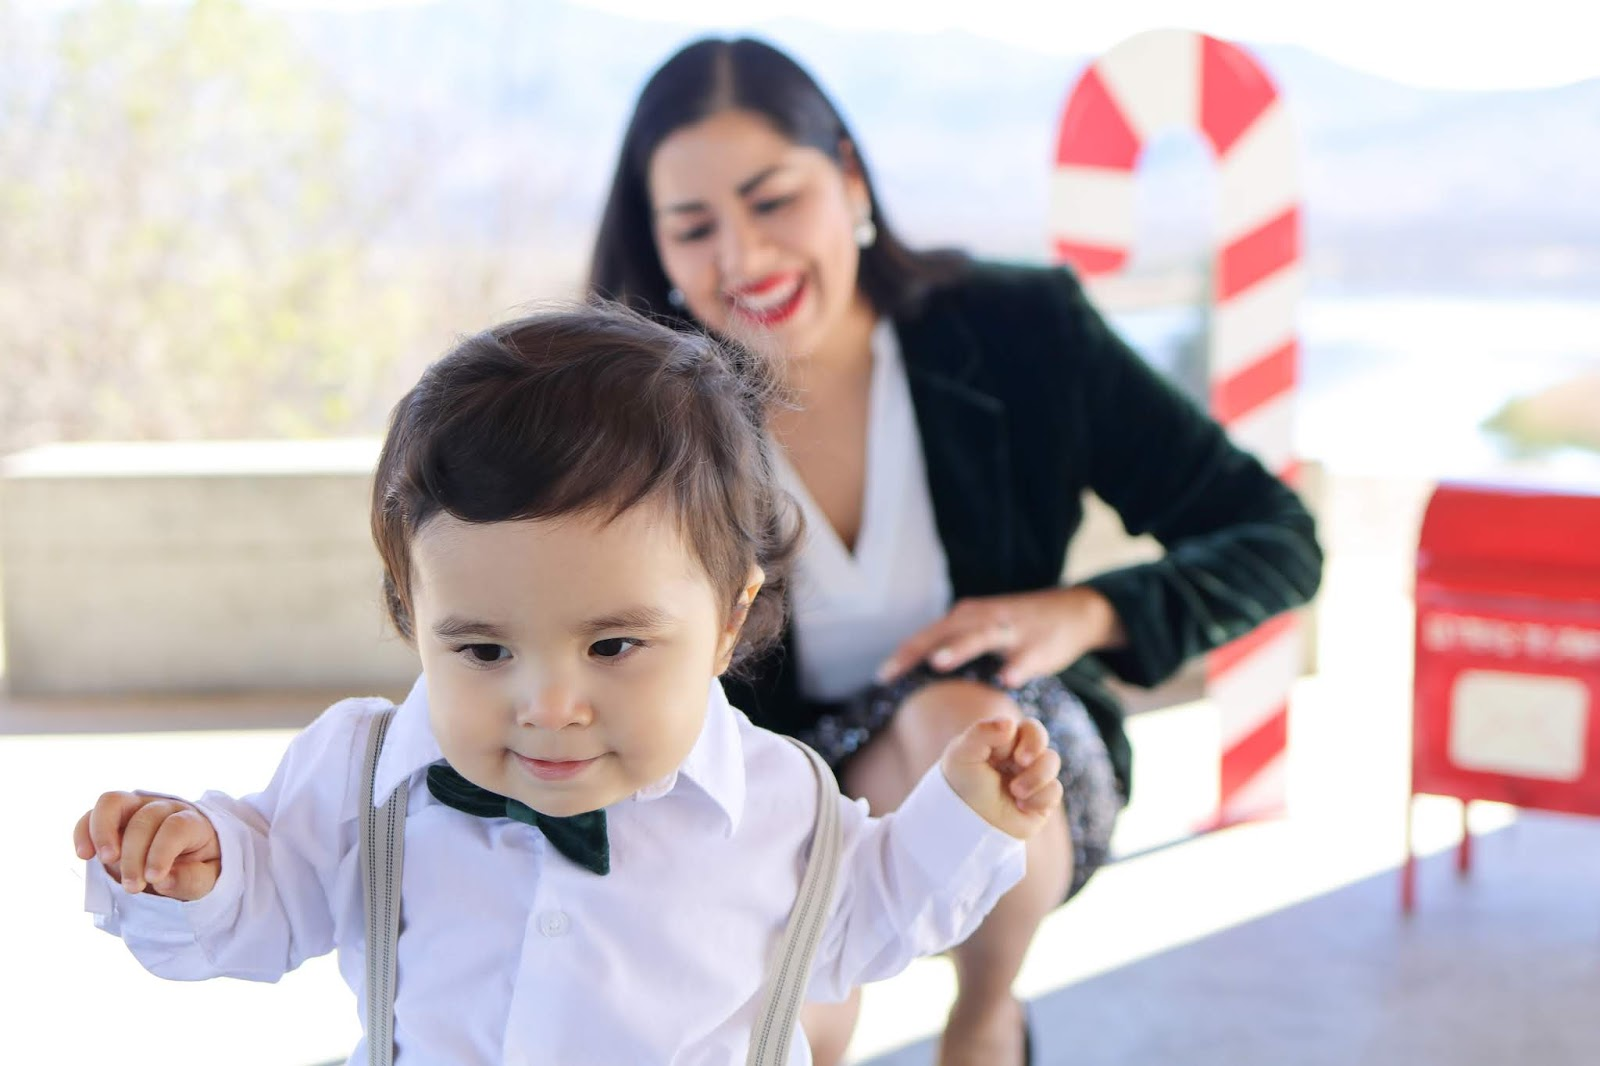 socal mom blogger, latina mom blogger, 1 year old son